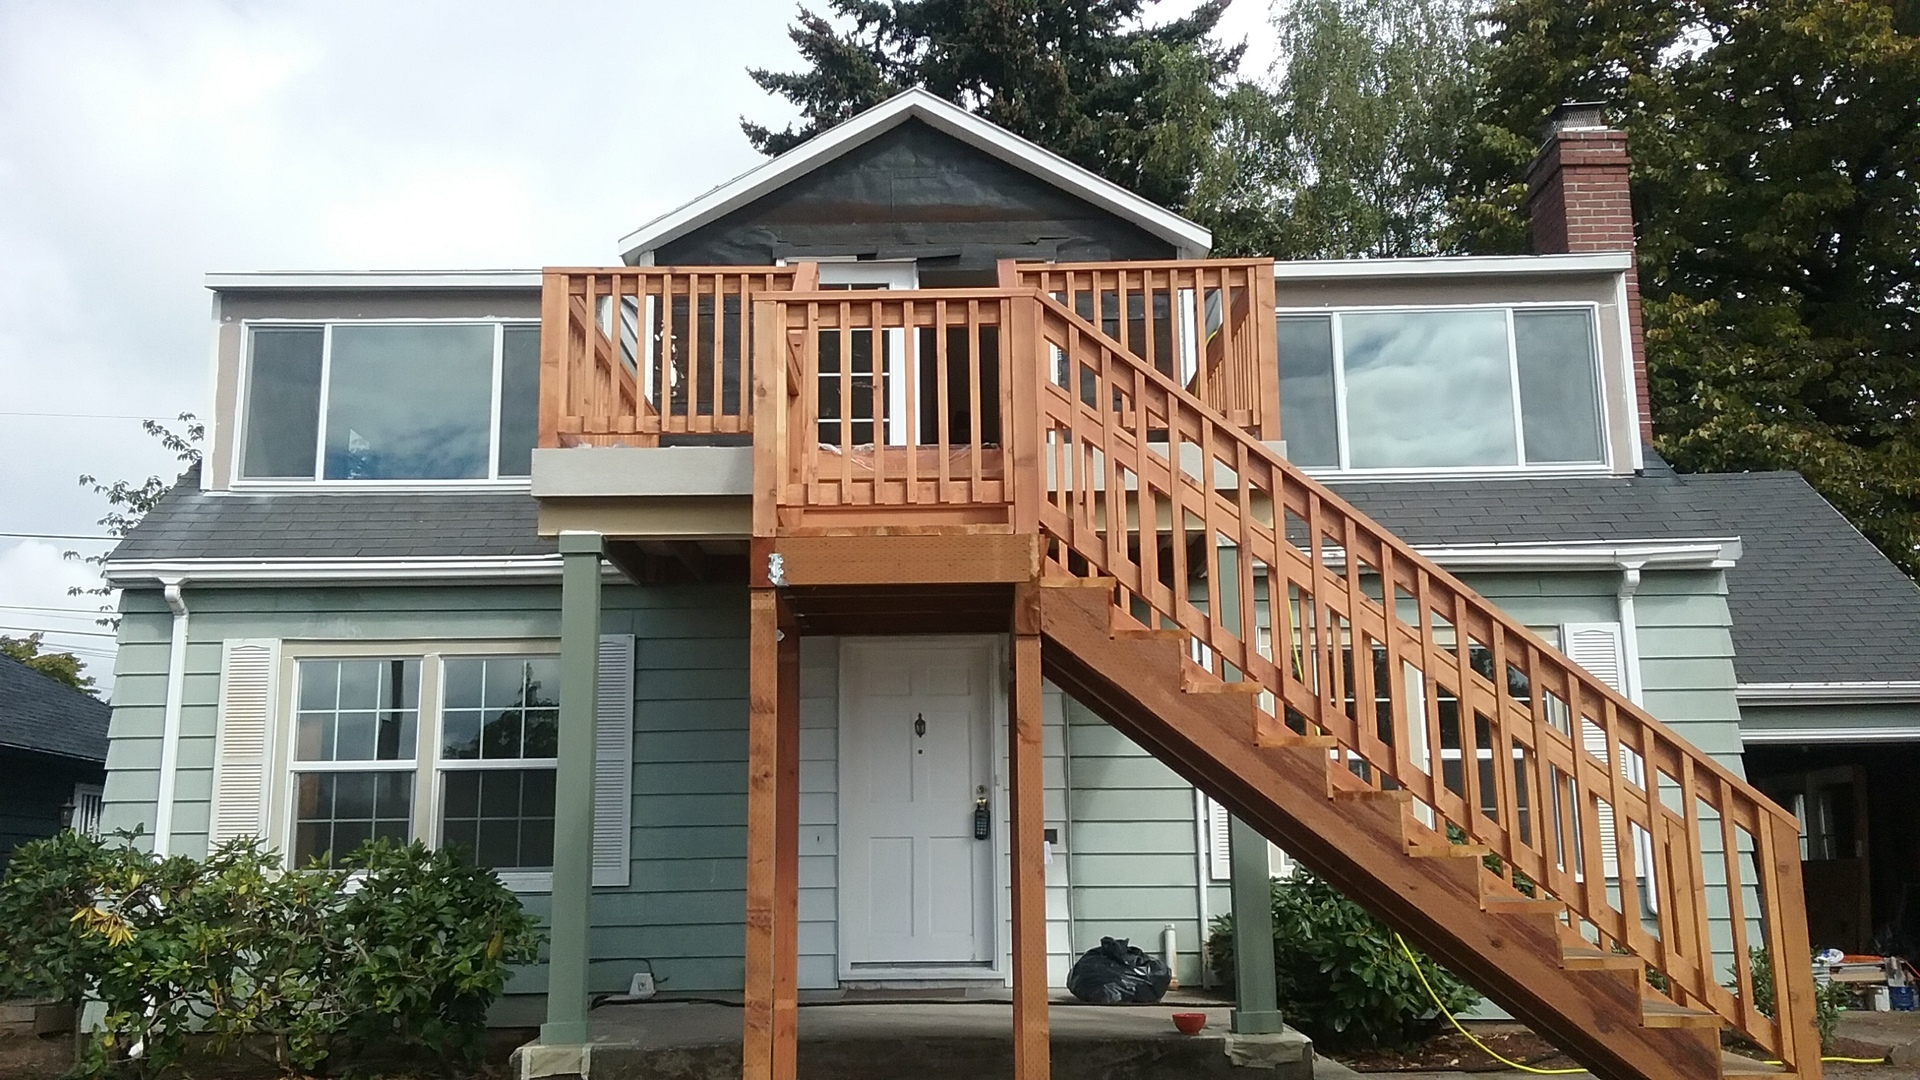 4617 N Willamette Blvd $100 OFF FIRST 4 MONTH'S RENT WITH A 16 MONTH LEASE SIGNING!!!